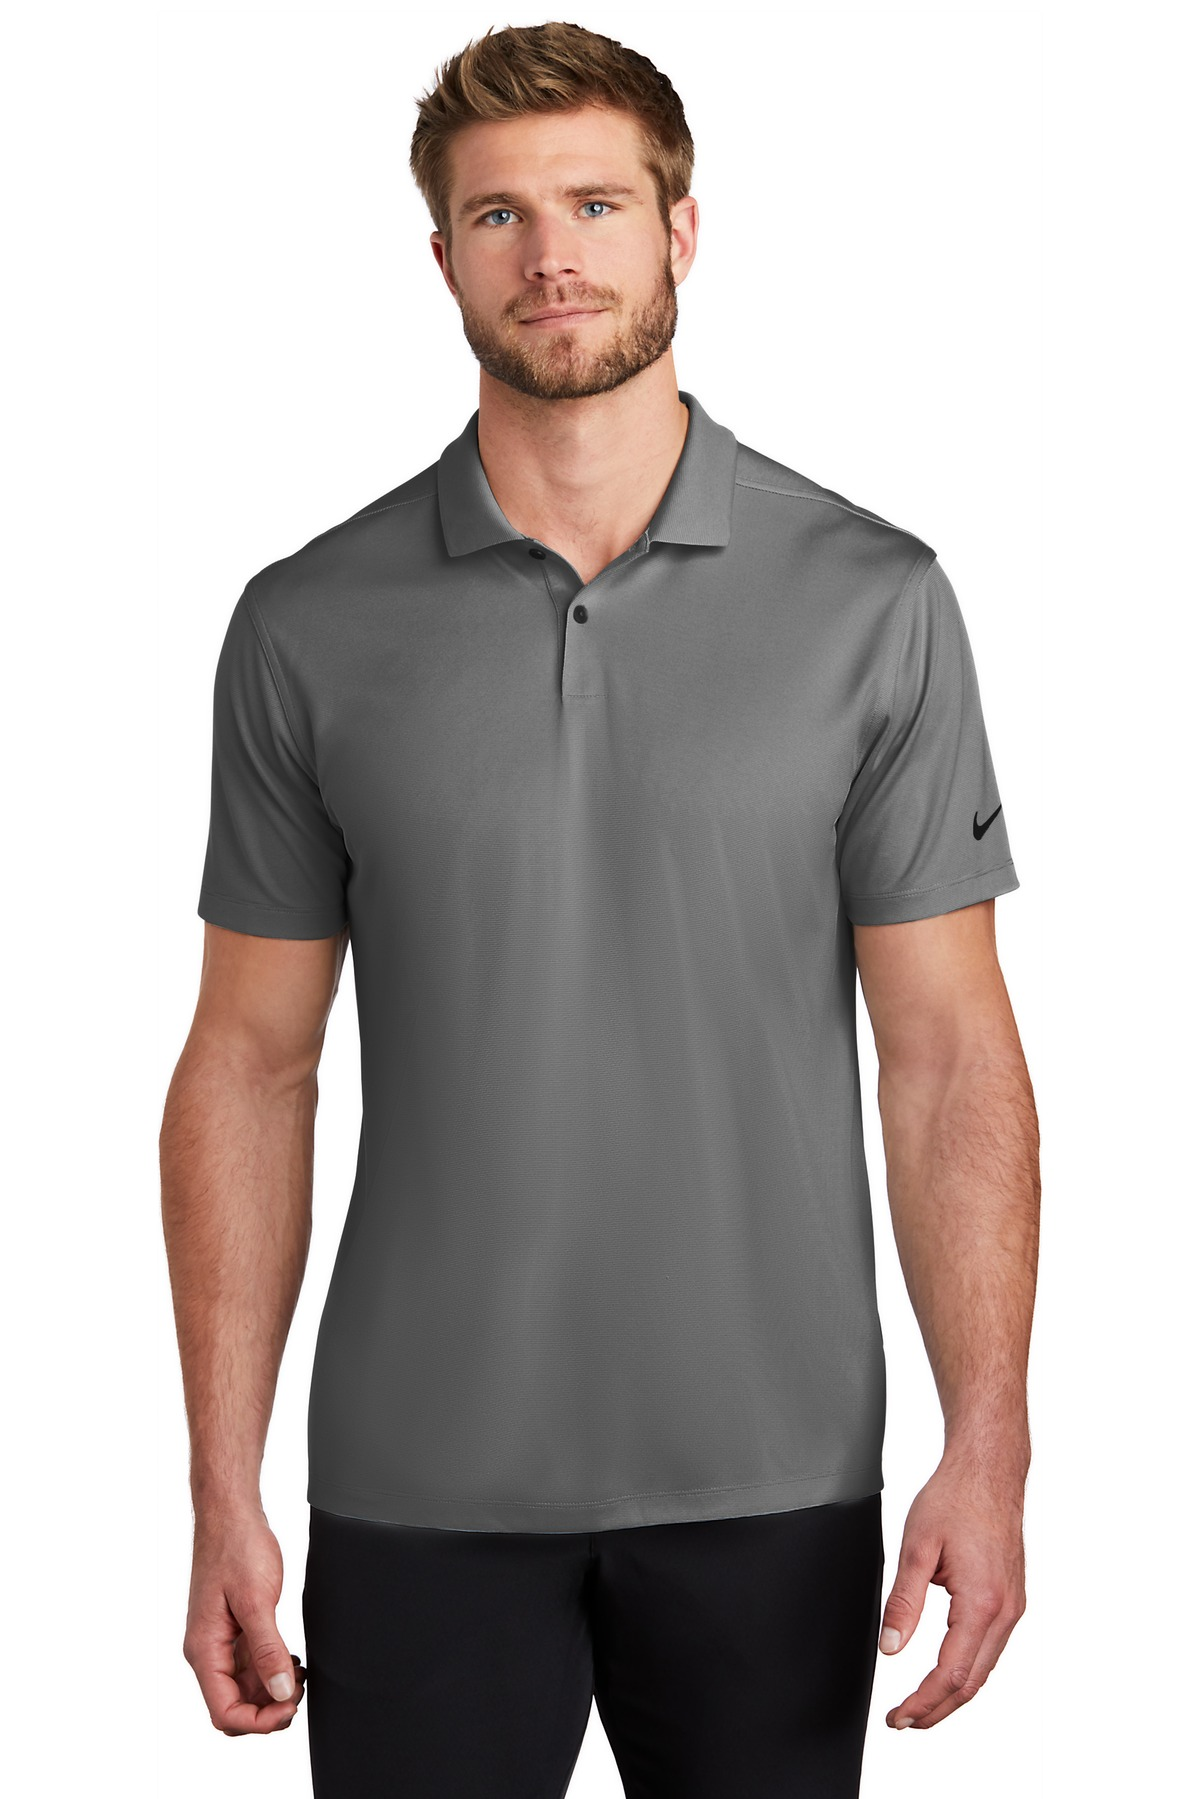 Nike Dry Victory Textured Polo NKBV6041 - Black Heather